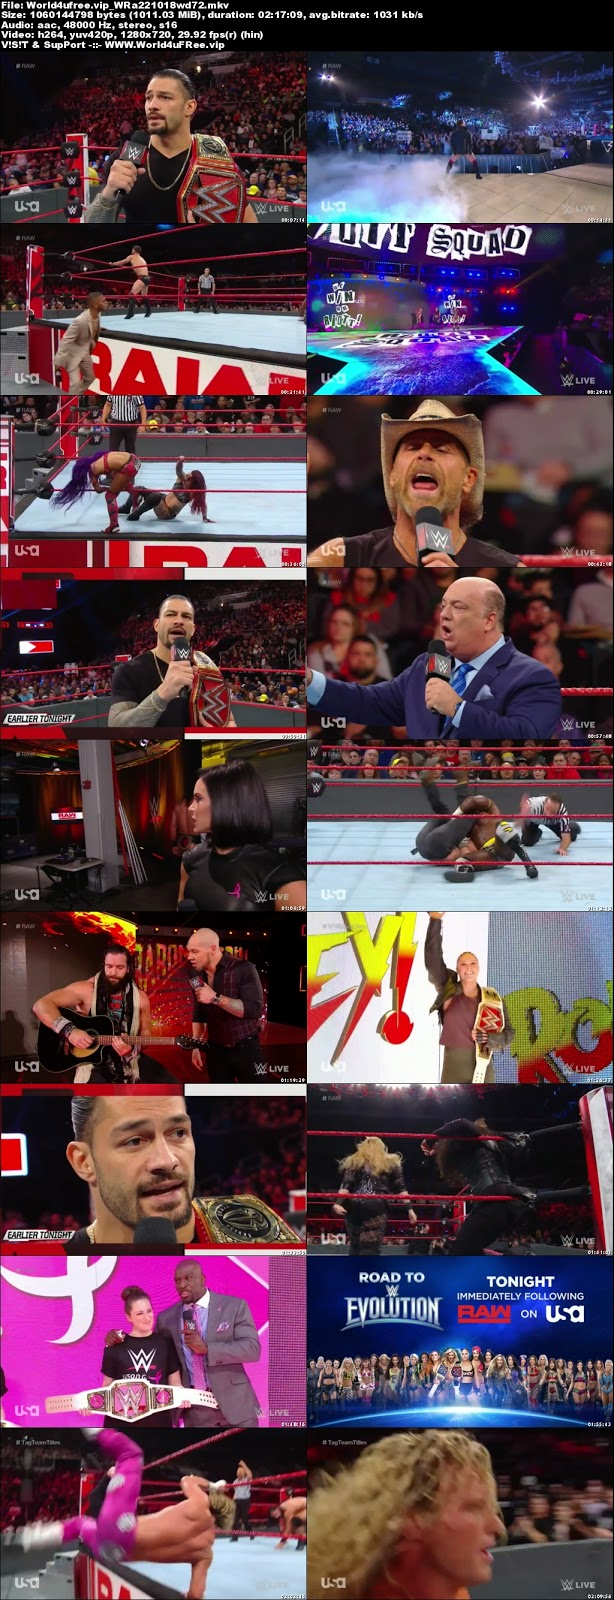 WWE Monday Night RAW 22 OCTOBER 2018 720p HDTV 1Gb x264 world4ufree.fun tv show wwe monday night raw wwe show monday night raw compressed small size free download or watch onlne at world4ufree.fun